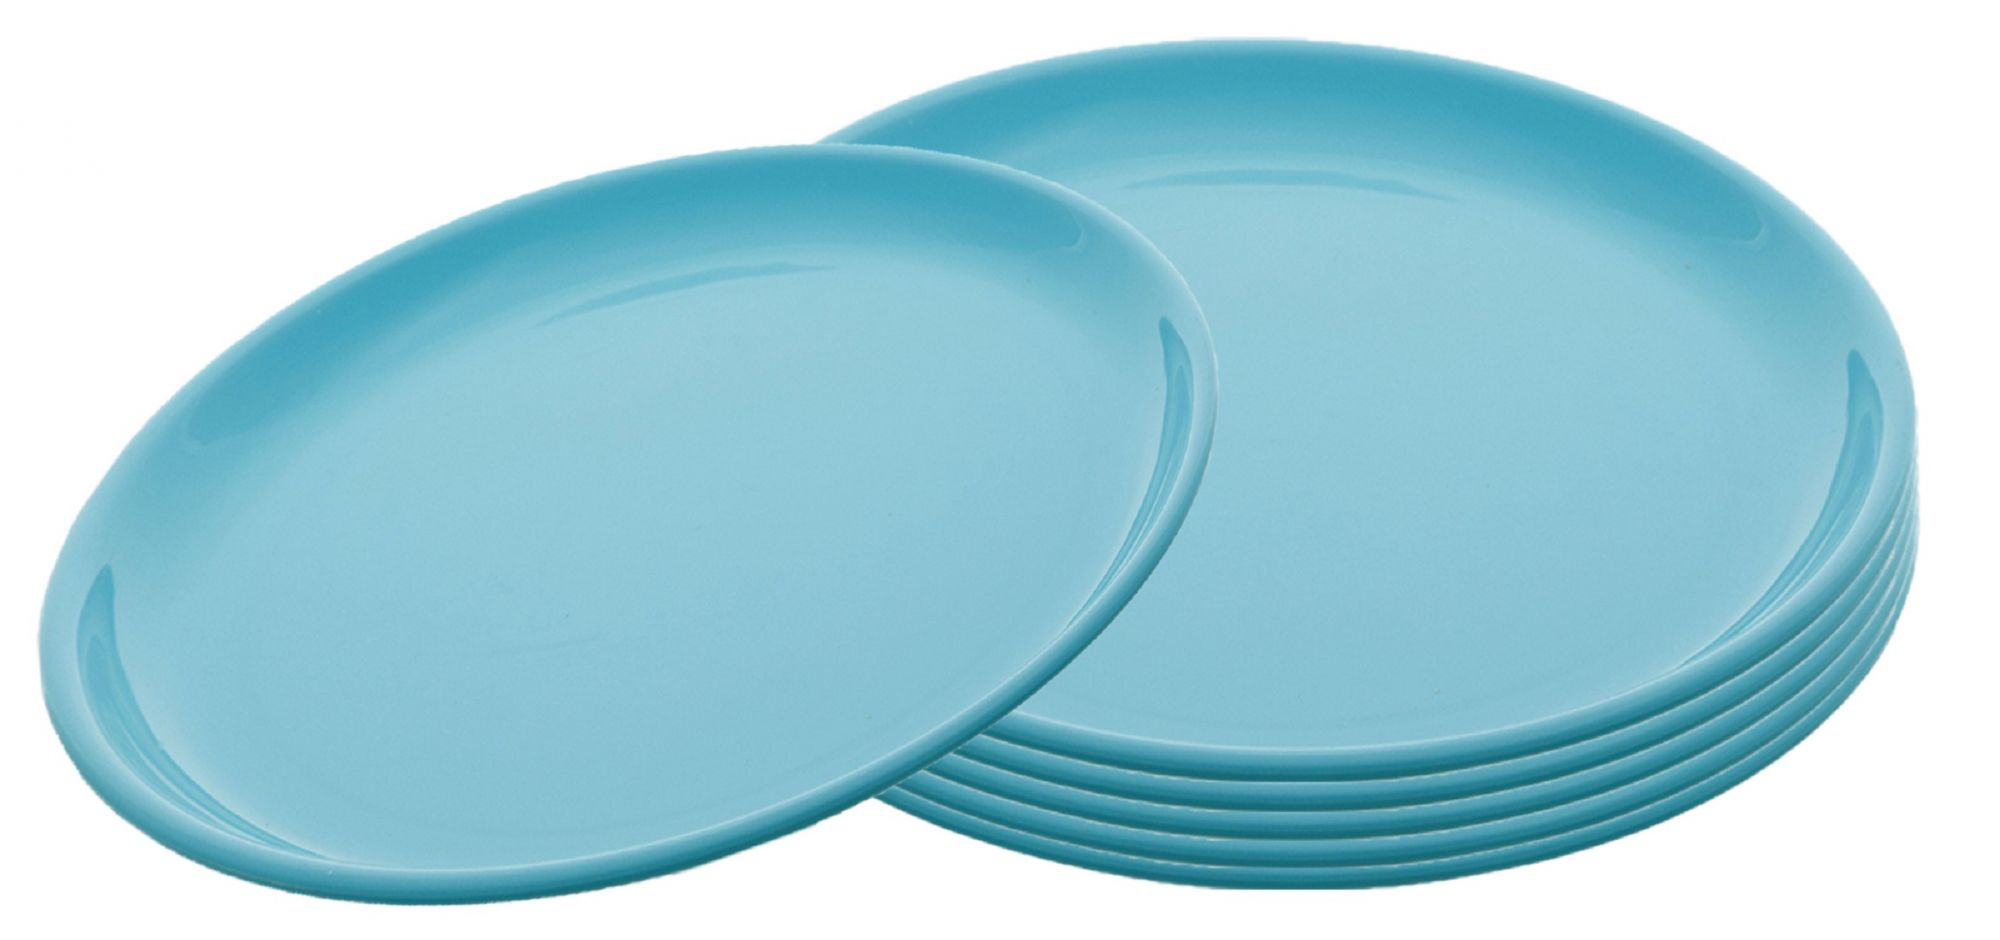 Kuber Industries Small Round 6 Pieces Unbreakable Plastic Microwave Safe Dinner Plates (Green) - CTKTC34841